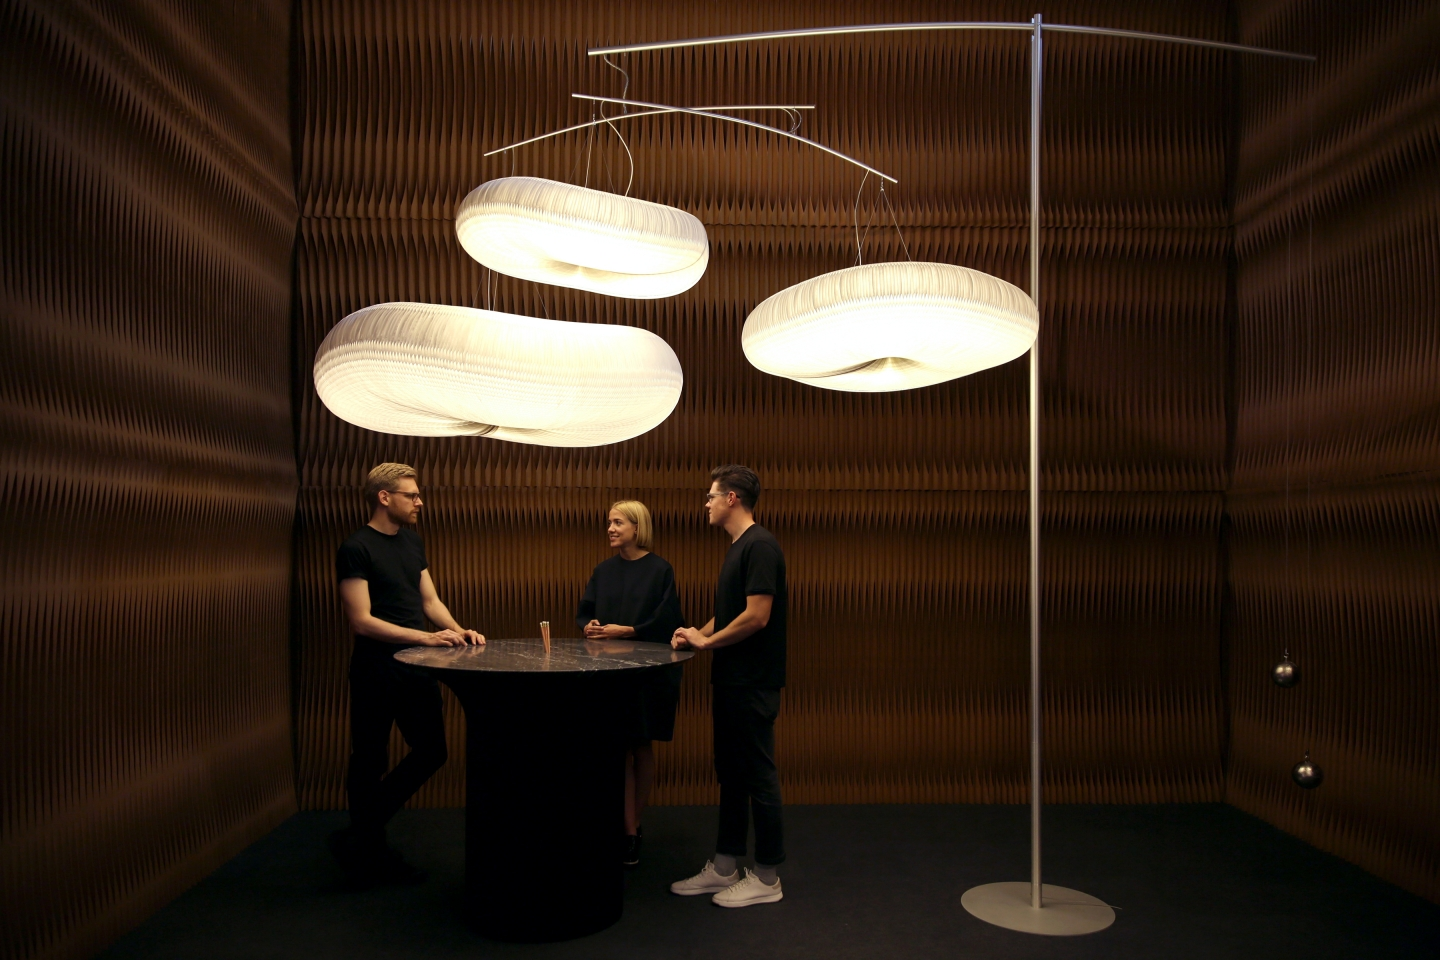 paper lighting - cloud mast by molo - three people chat below a large cloud mast at molo's ICFF 2016 installation